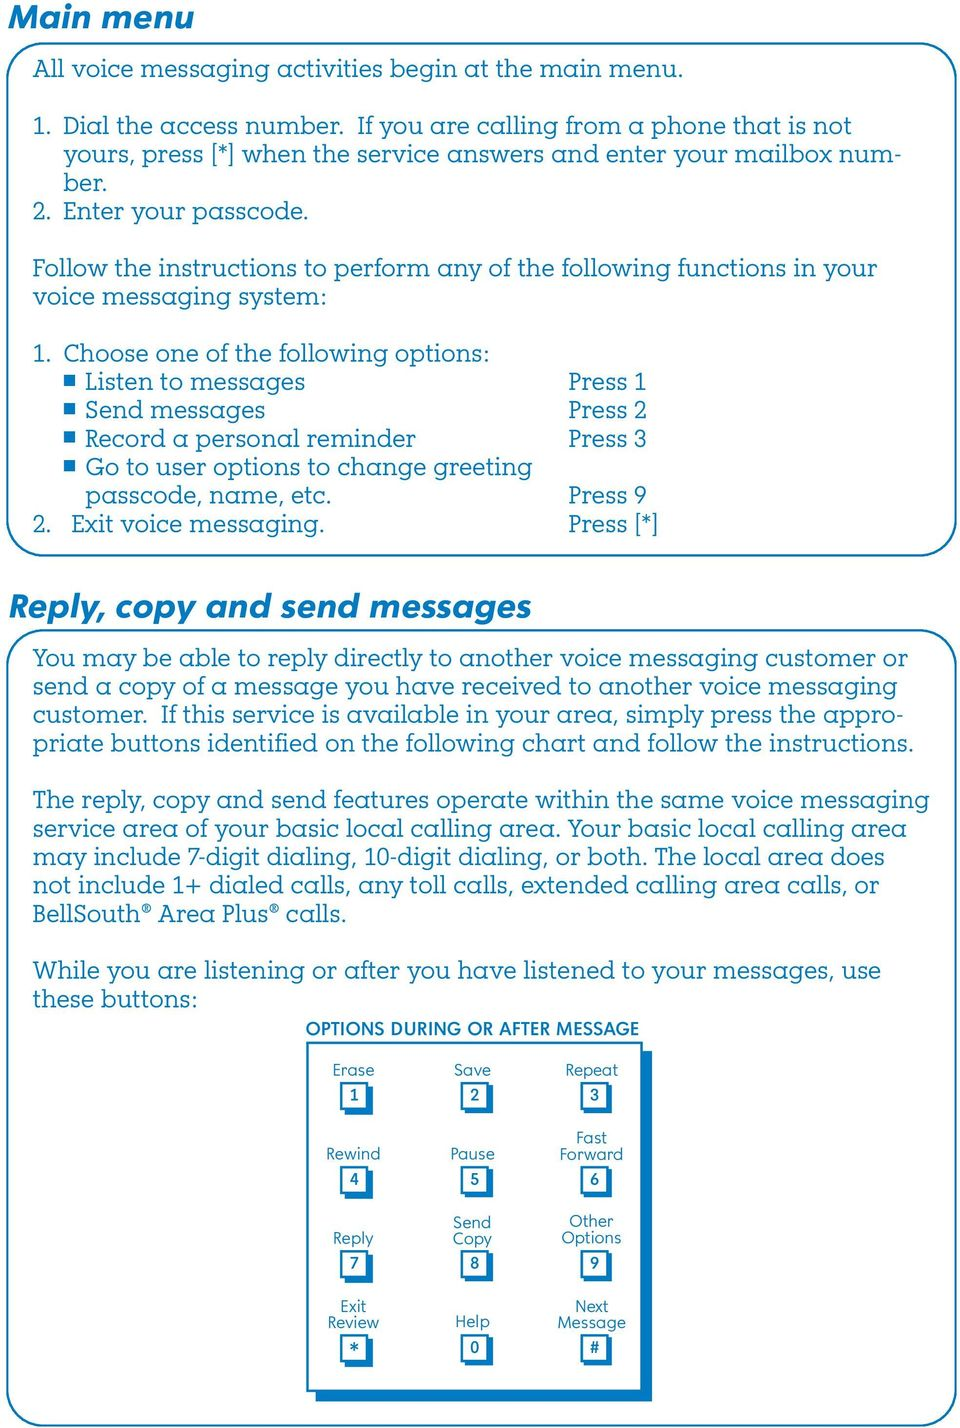 Follow the instructions to perform any of the following functions in your voice messaging system:.